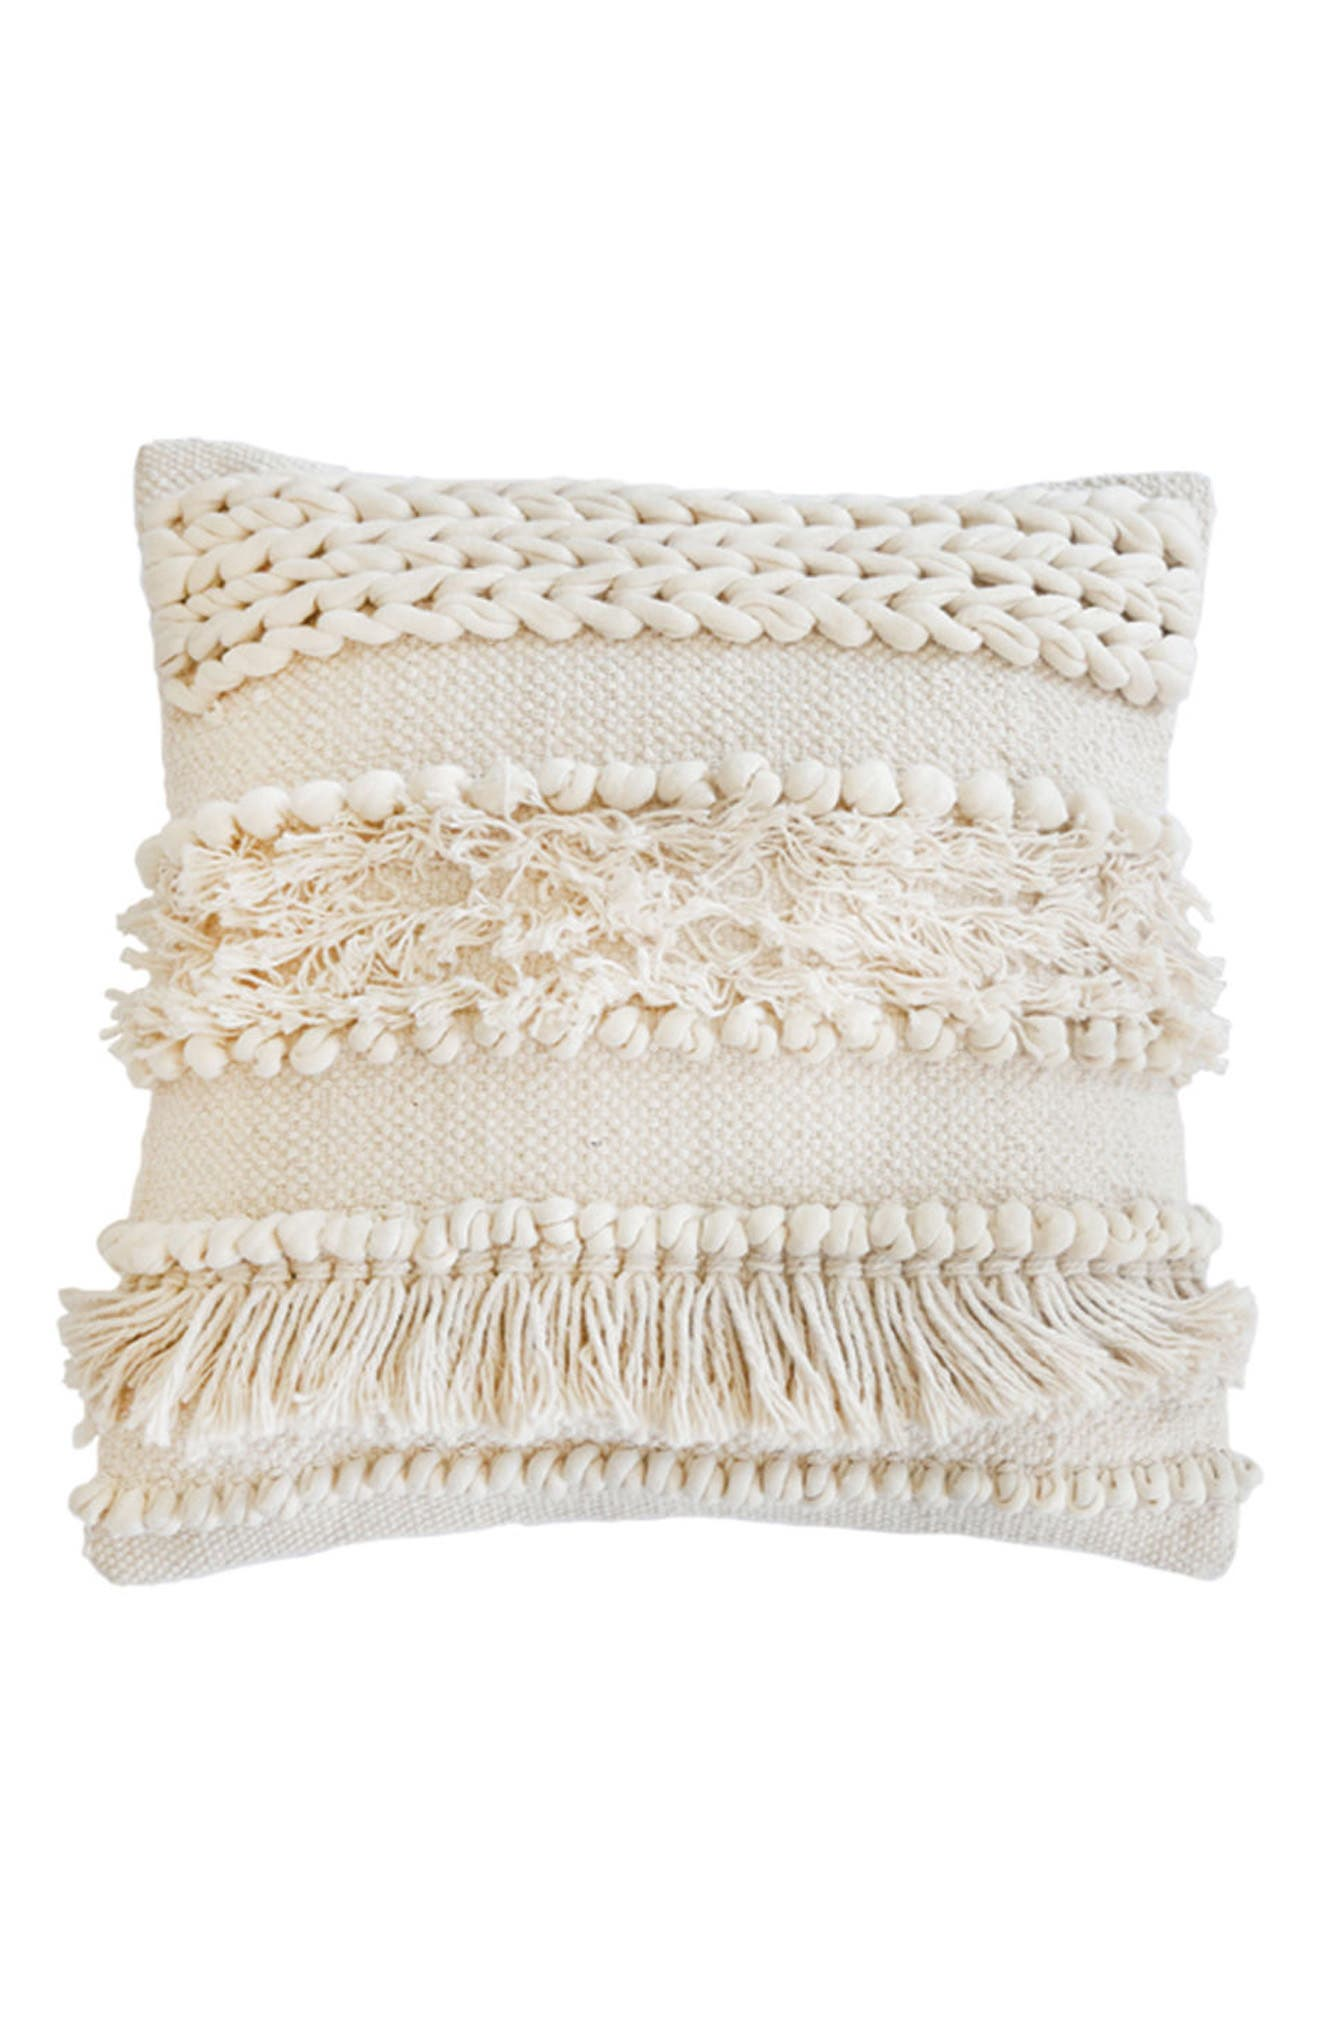 Iman Accent Pillow,                         Main,                         color, Ivory